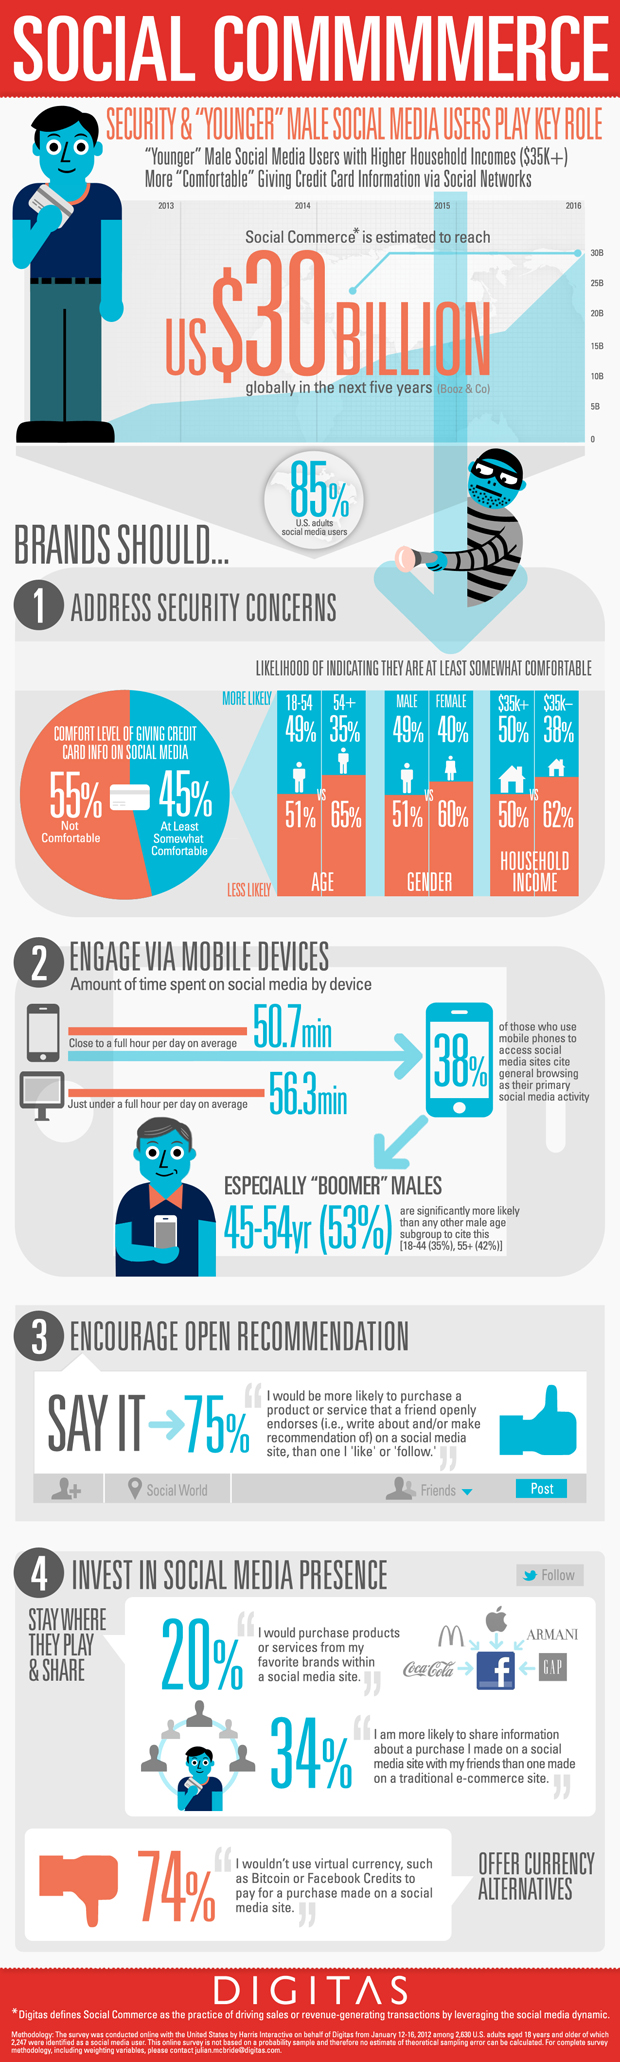 Social-Commerce-infographic